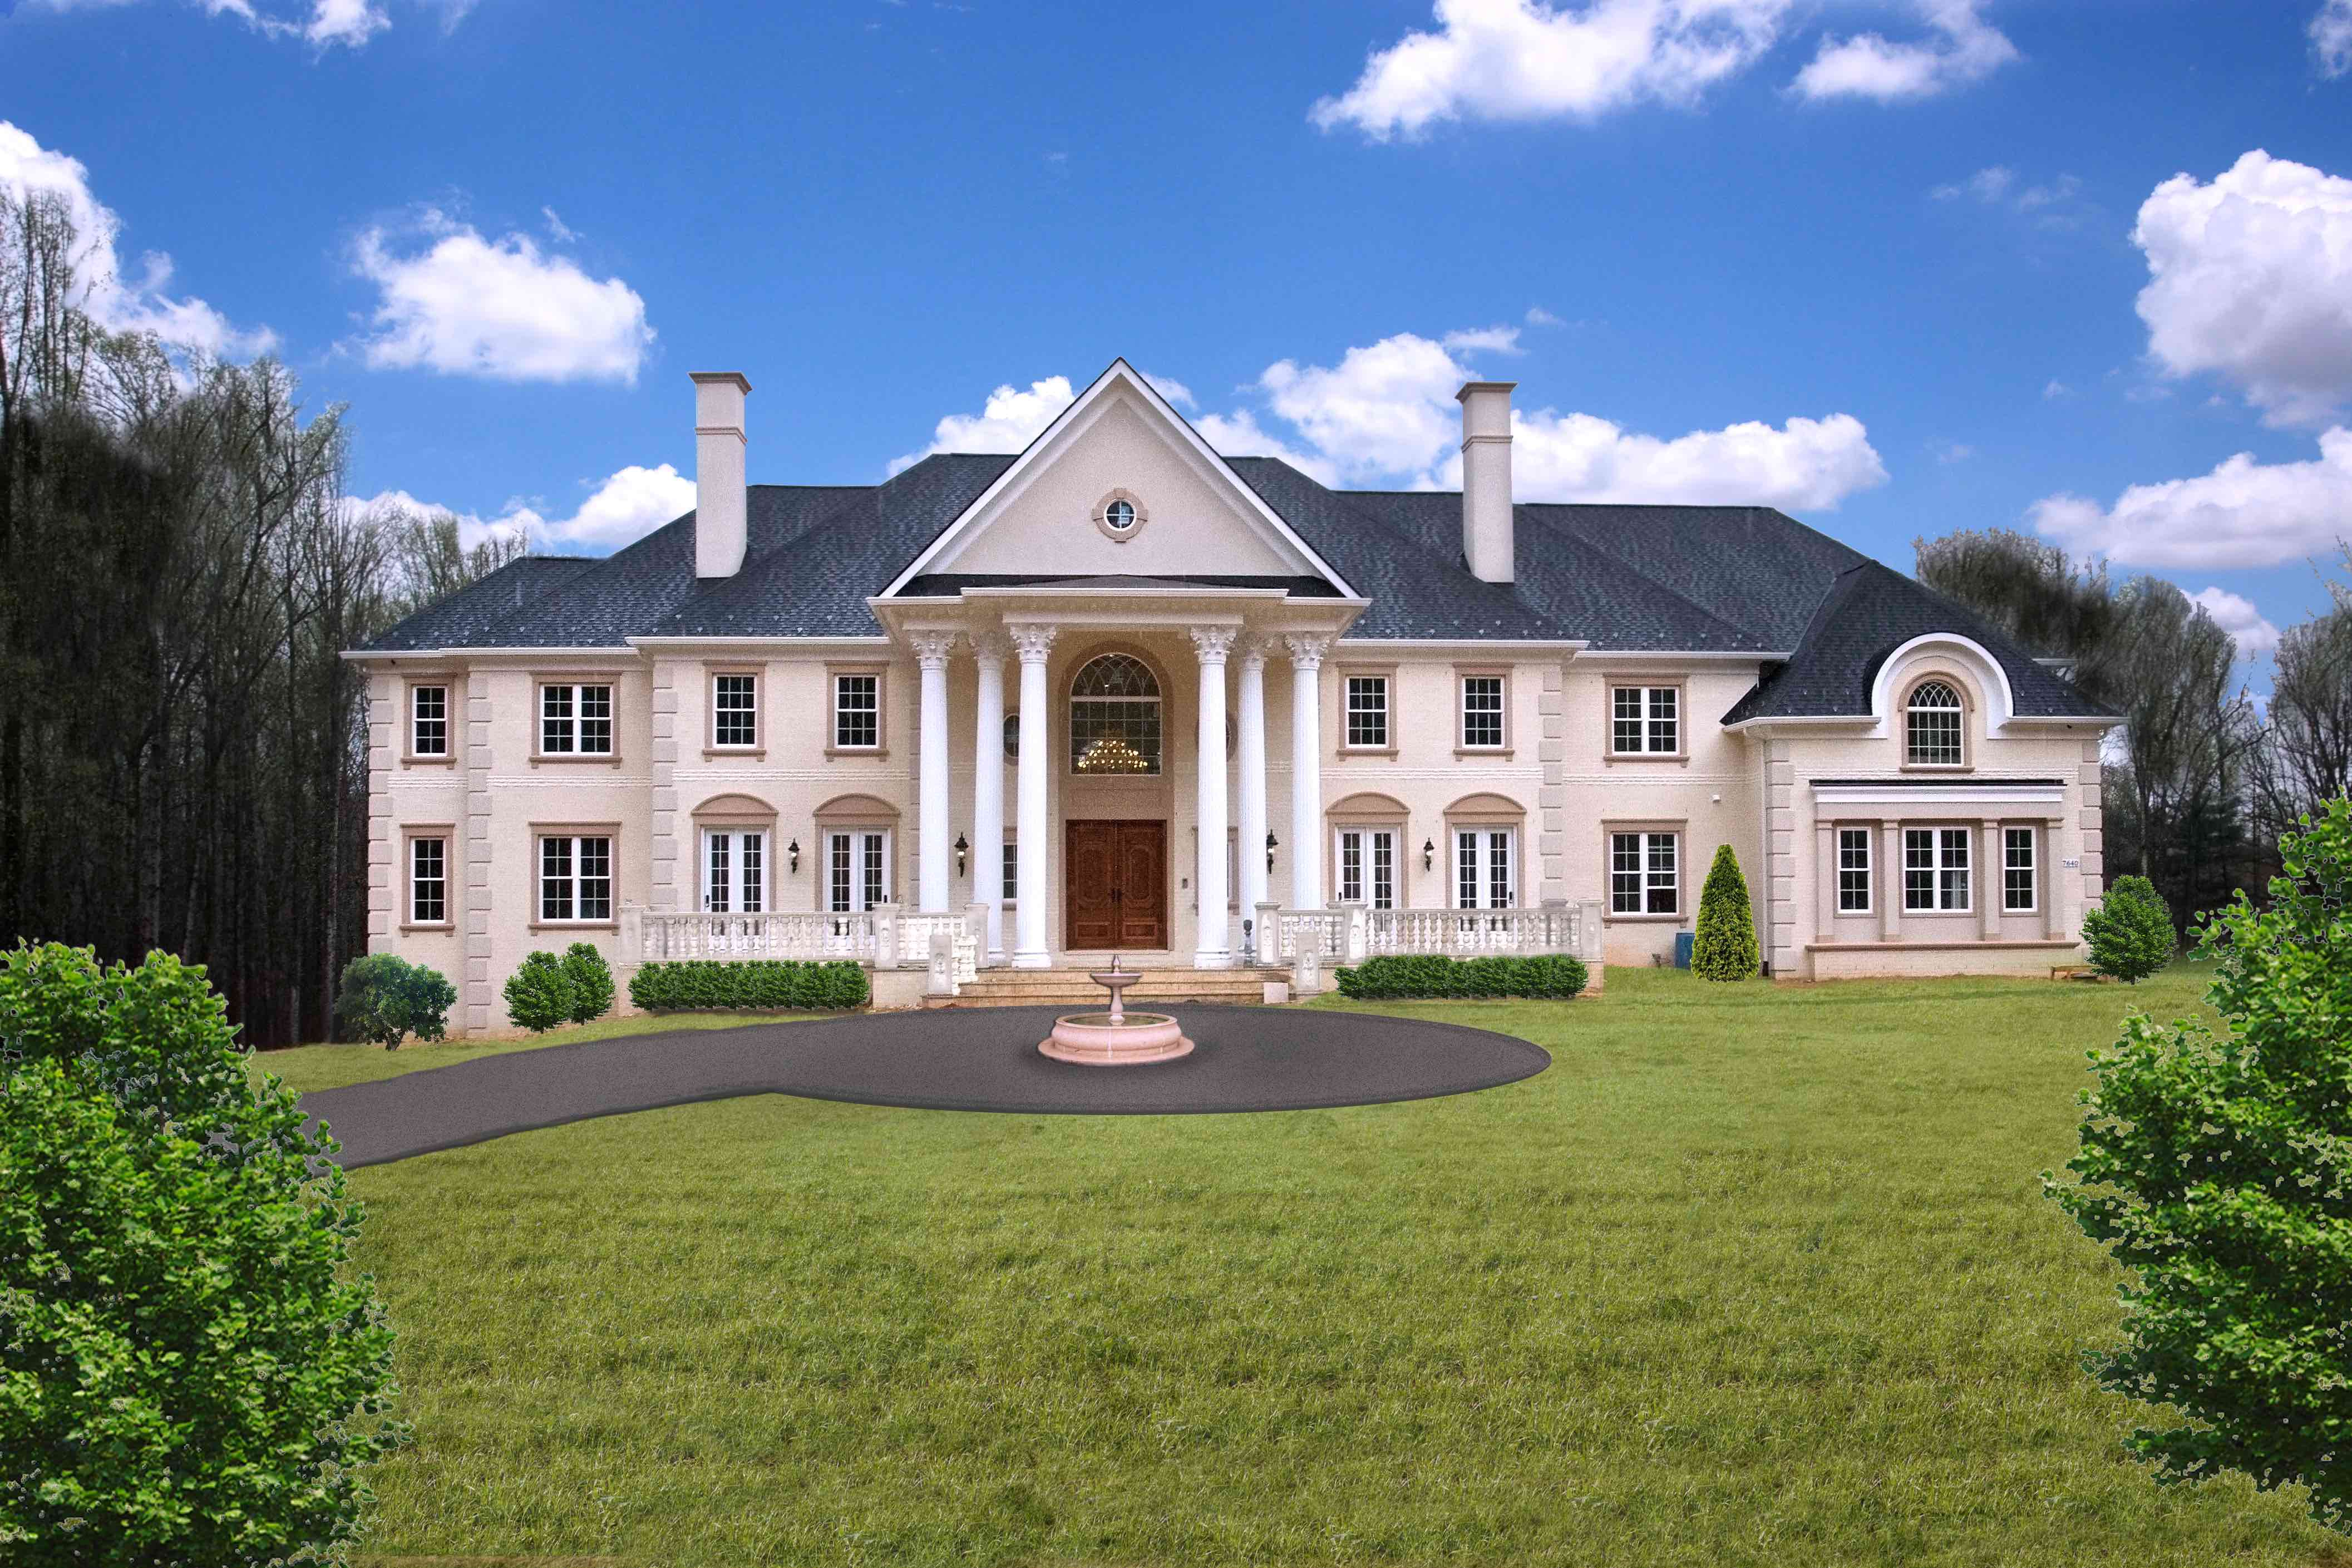 Single Family for Sale at By Botero Homes In Clifton-Clifton I -Future Construction Yates Ford Rd Clifton, Virginia 20124 United States